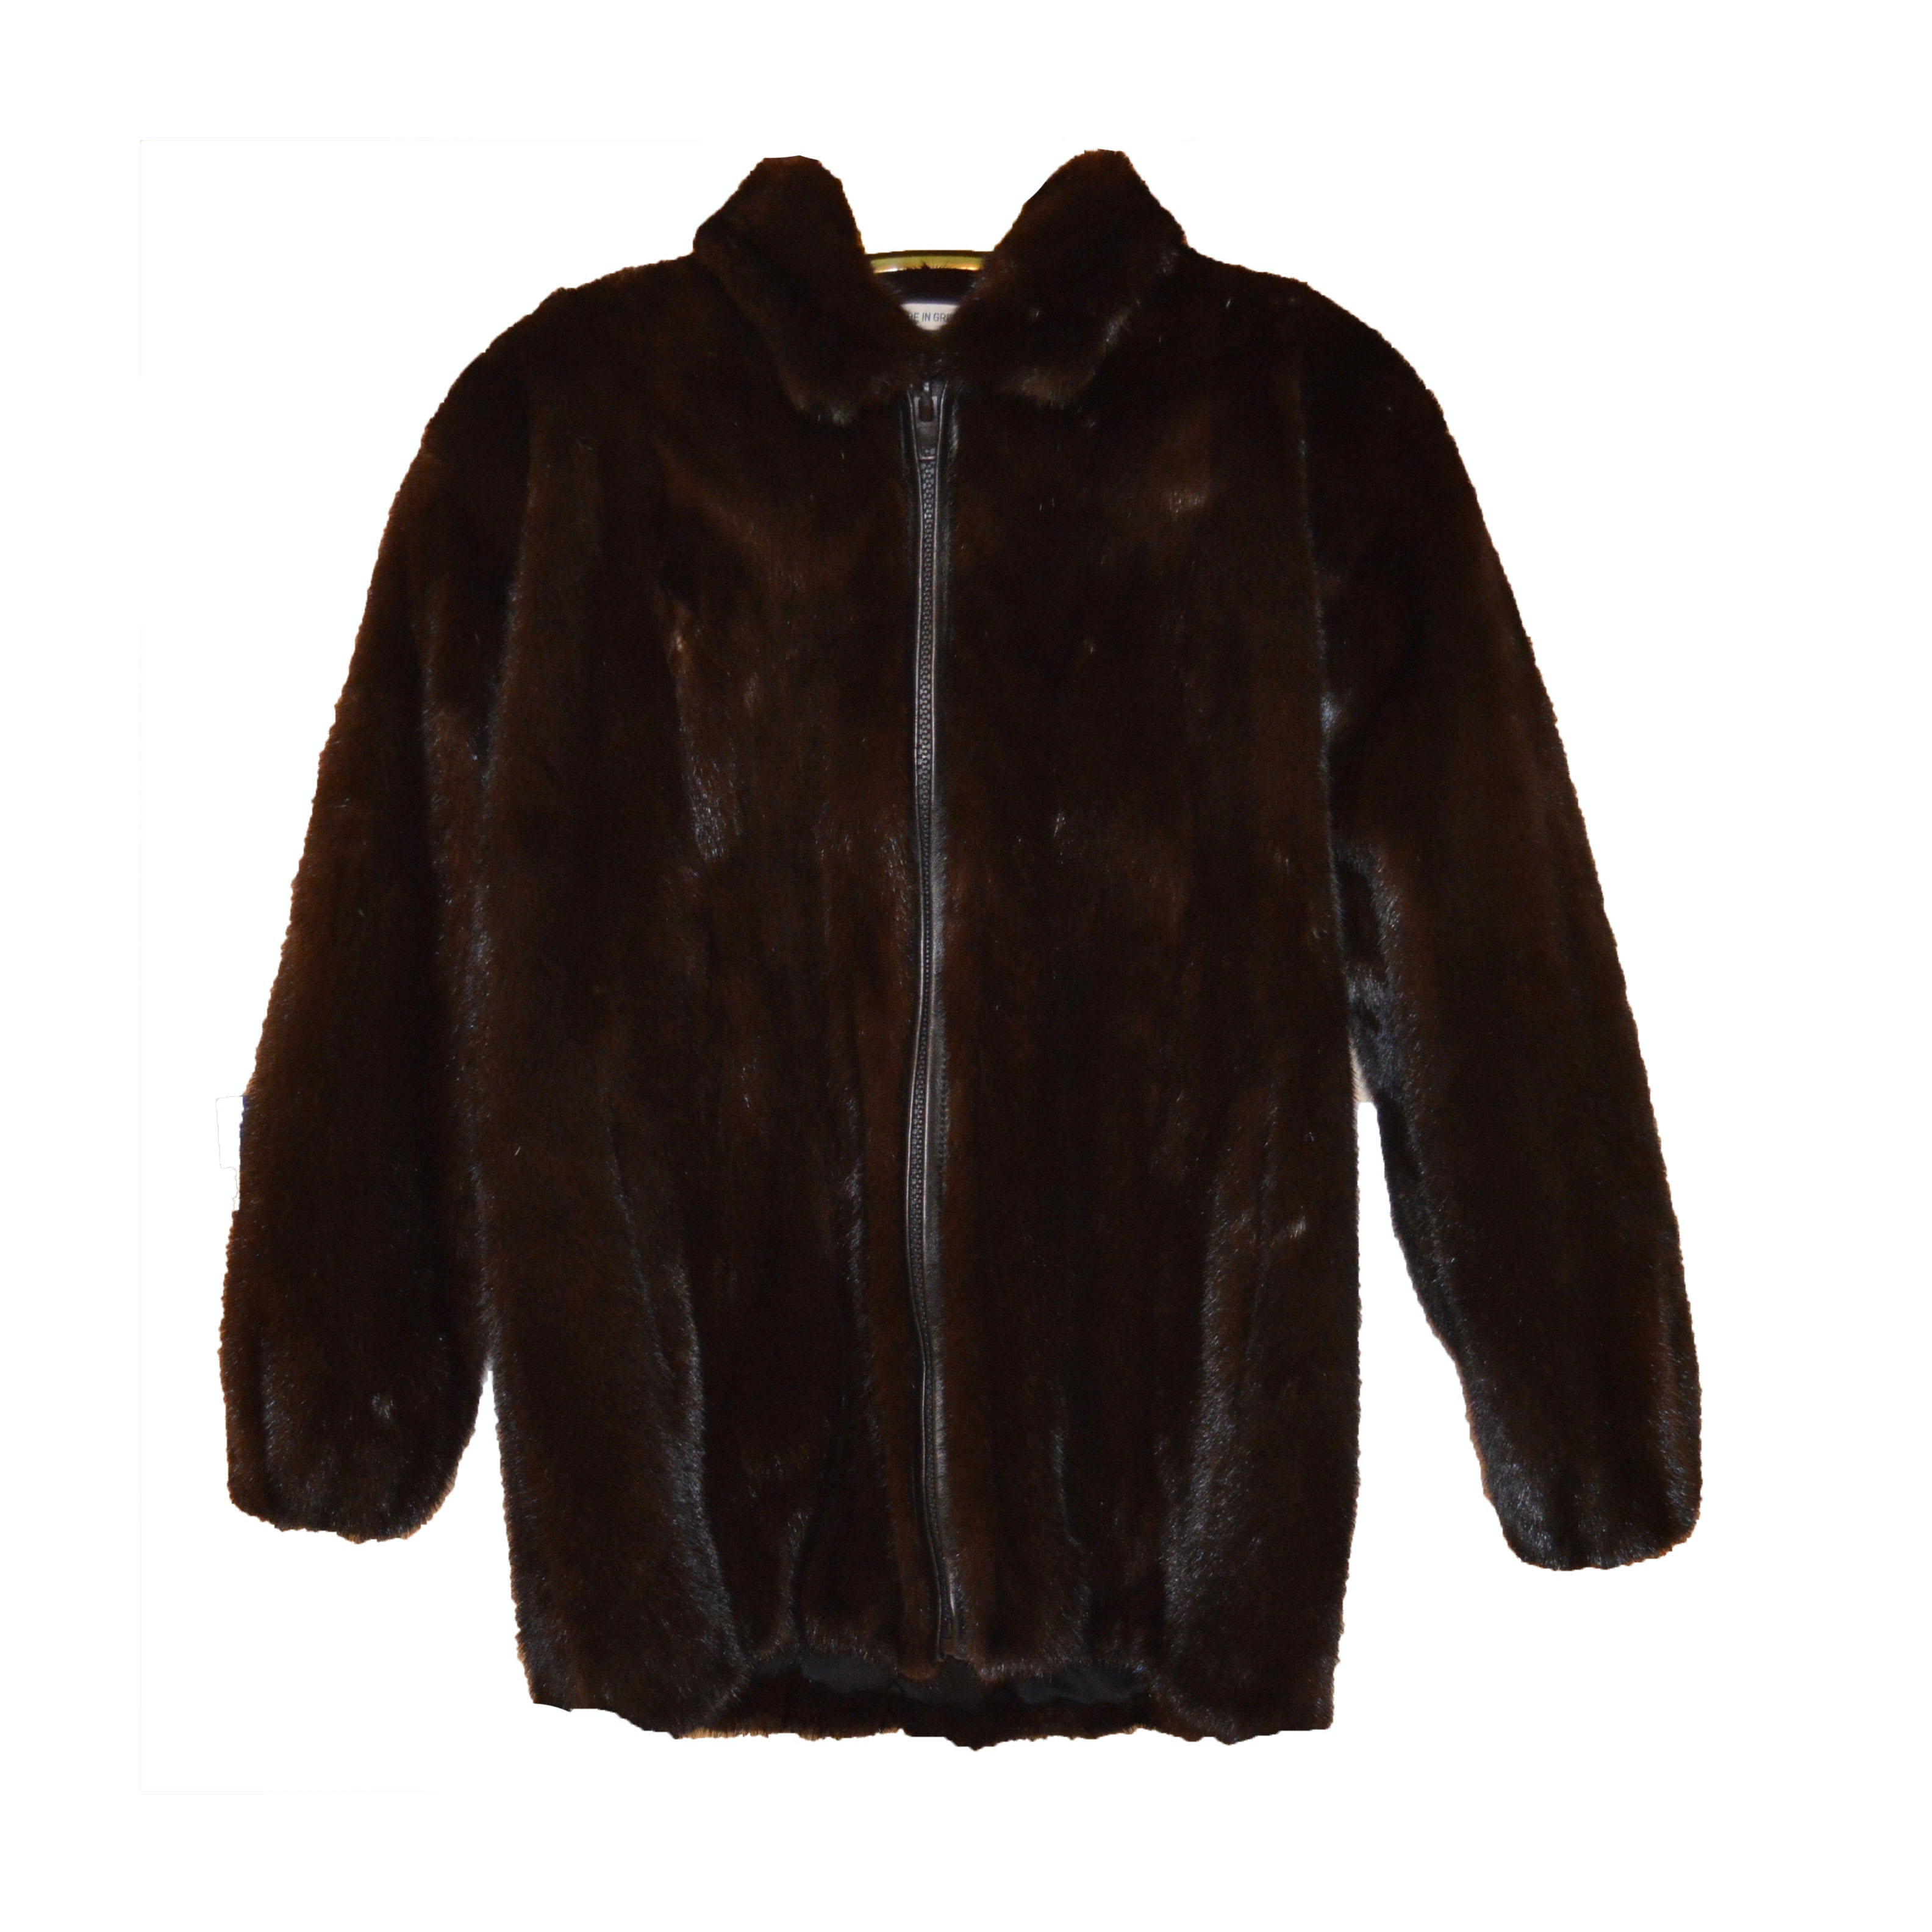 Mink Fur Jacket by The Evans Collection